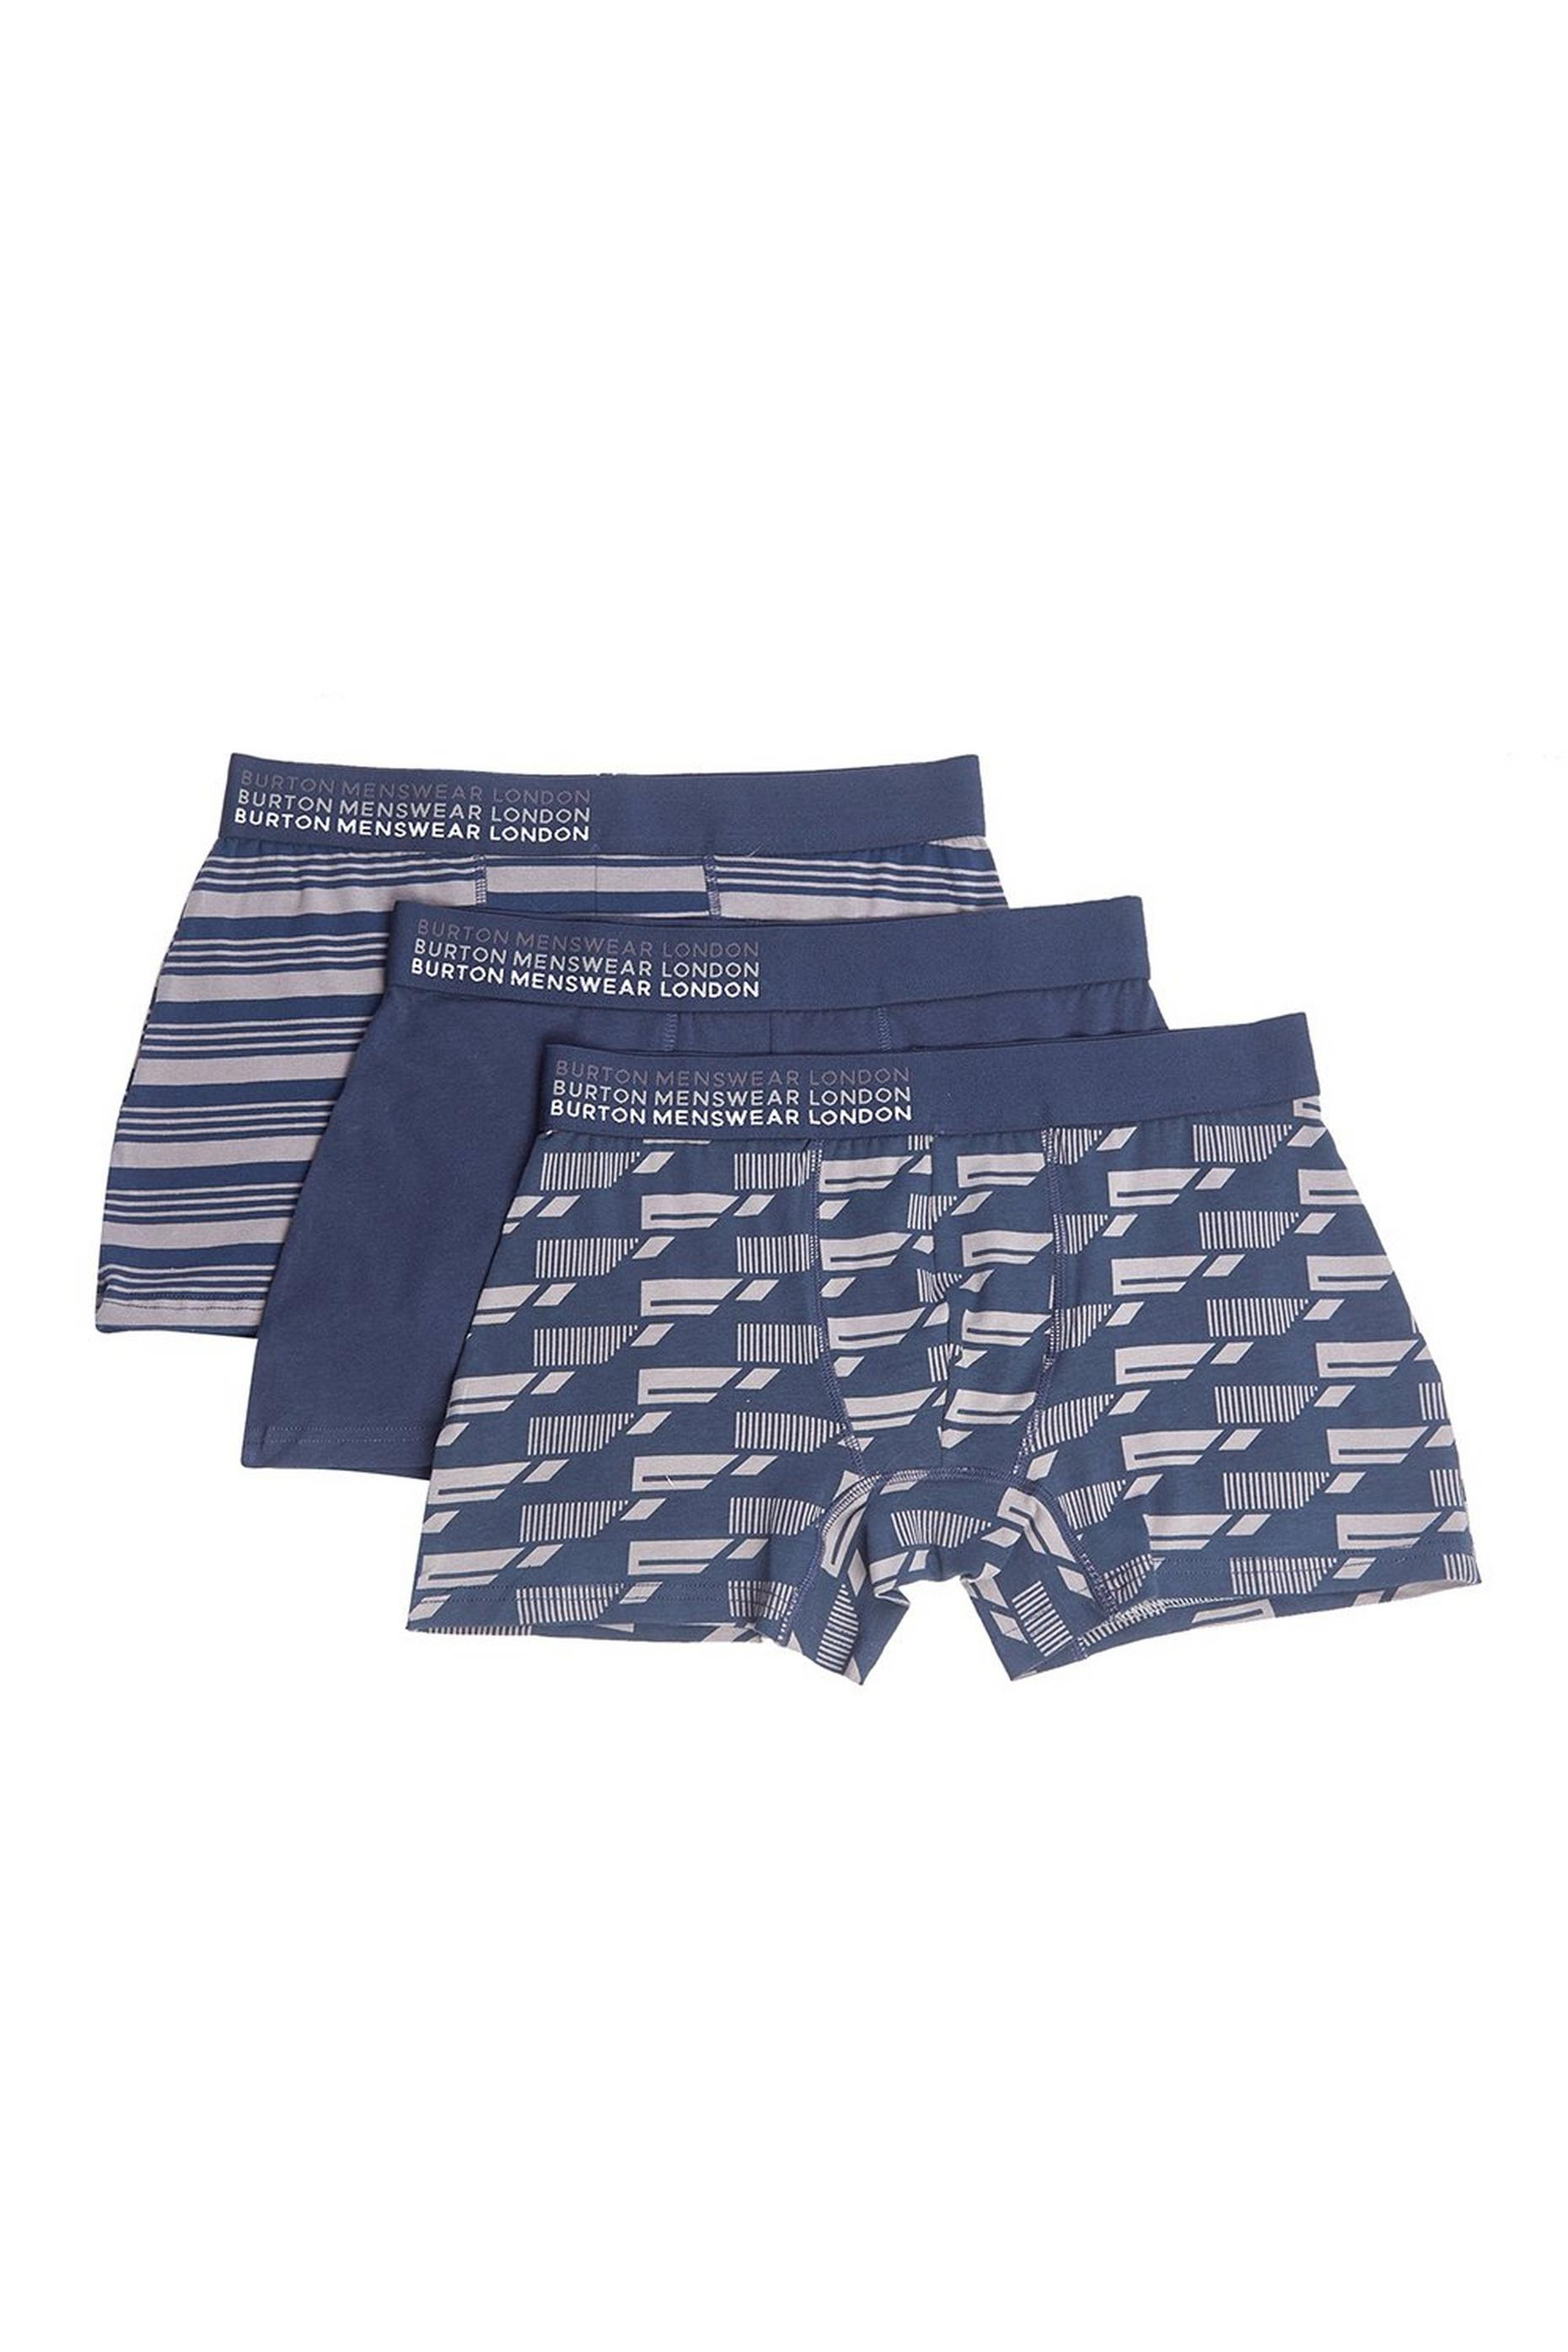 3 Pack Navy Geometric Stripe Print Trunks